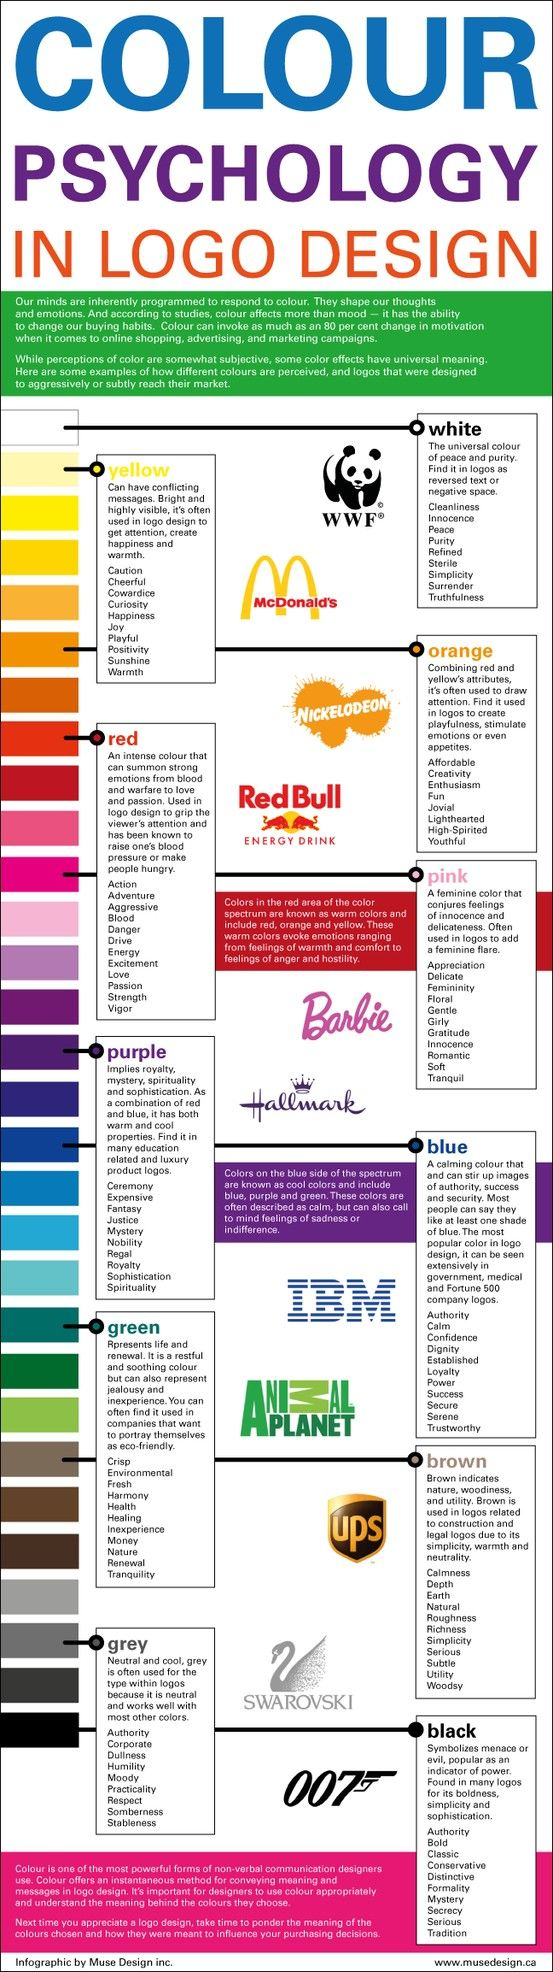 This infographic explains how we interpret famous logos and their colors.